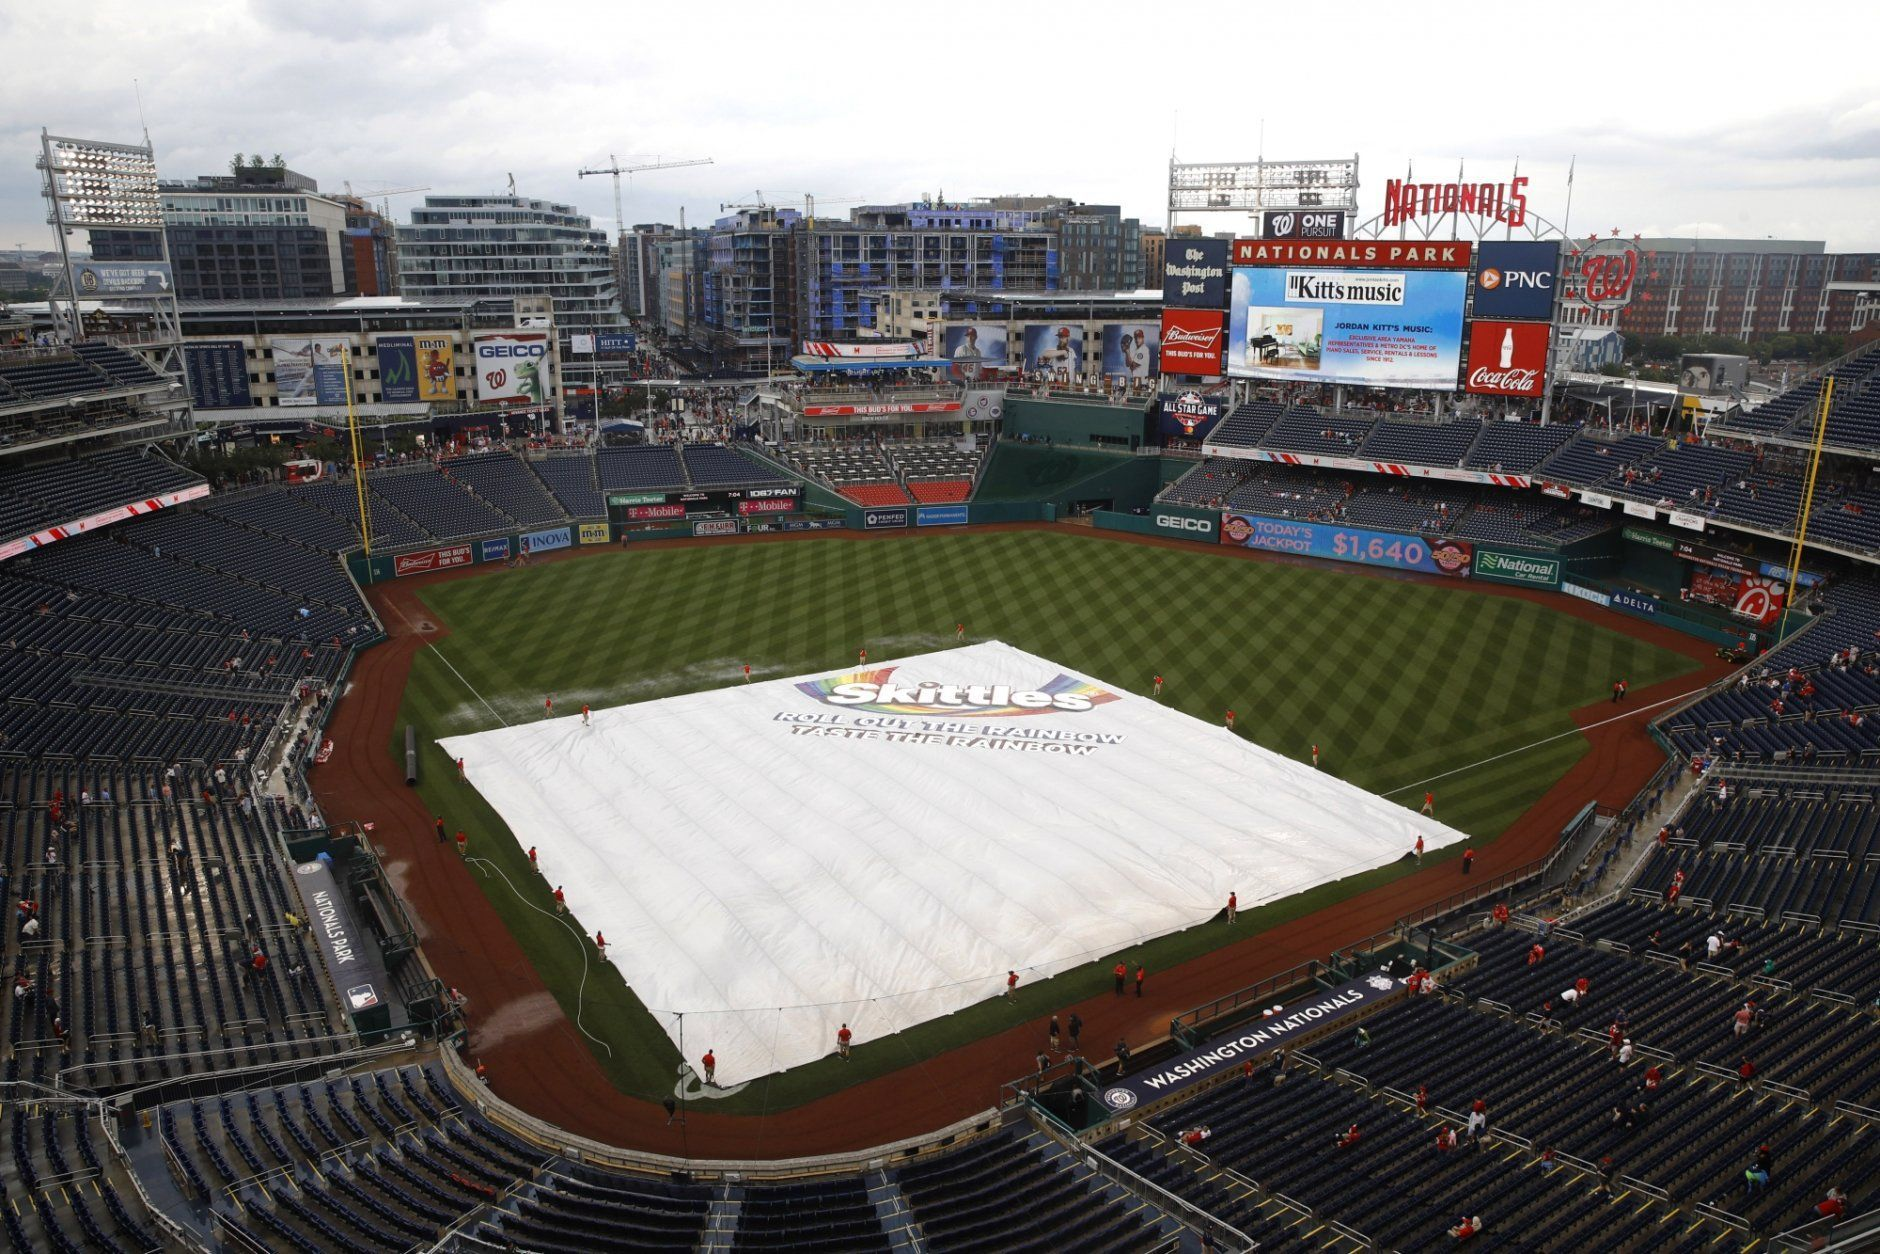 A tarp covers the infield during a rain delay before a baseball game between the Philadelphia Phillies and the Washington Nationals, Monday, June 17, 2019, in Washington. (AP Photo/Patrick Semansky)